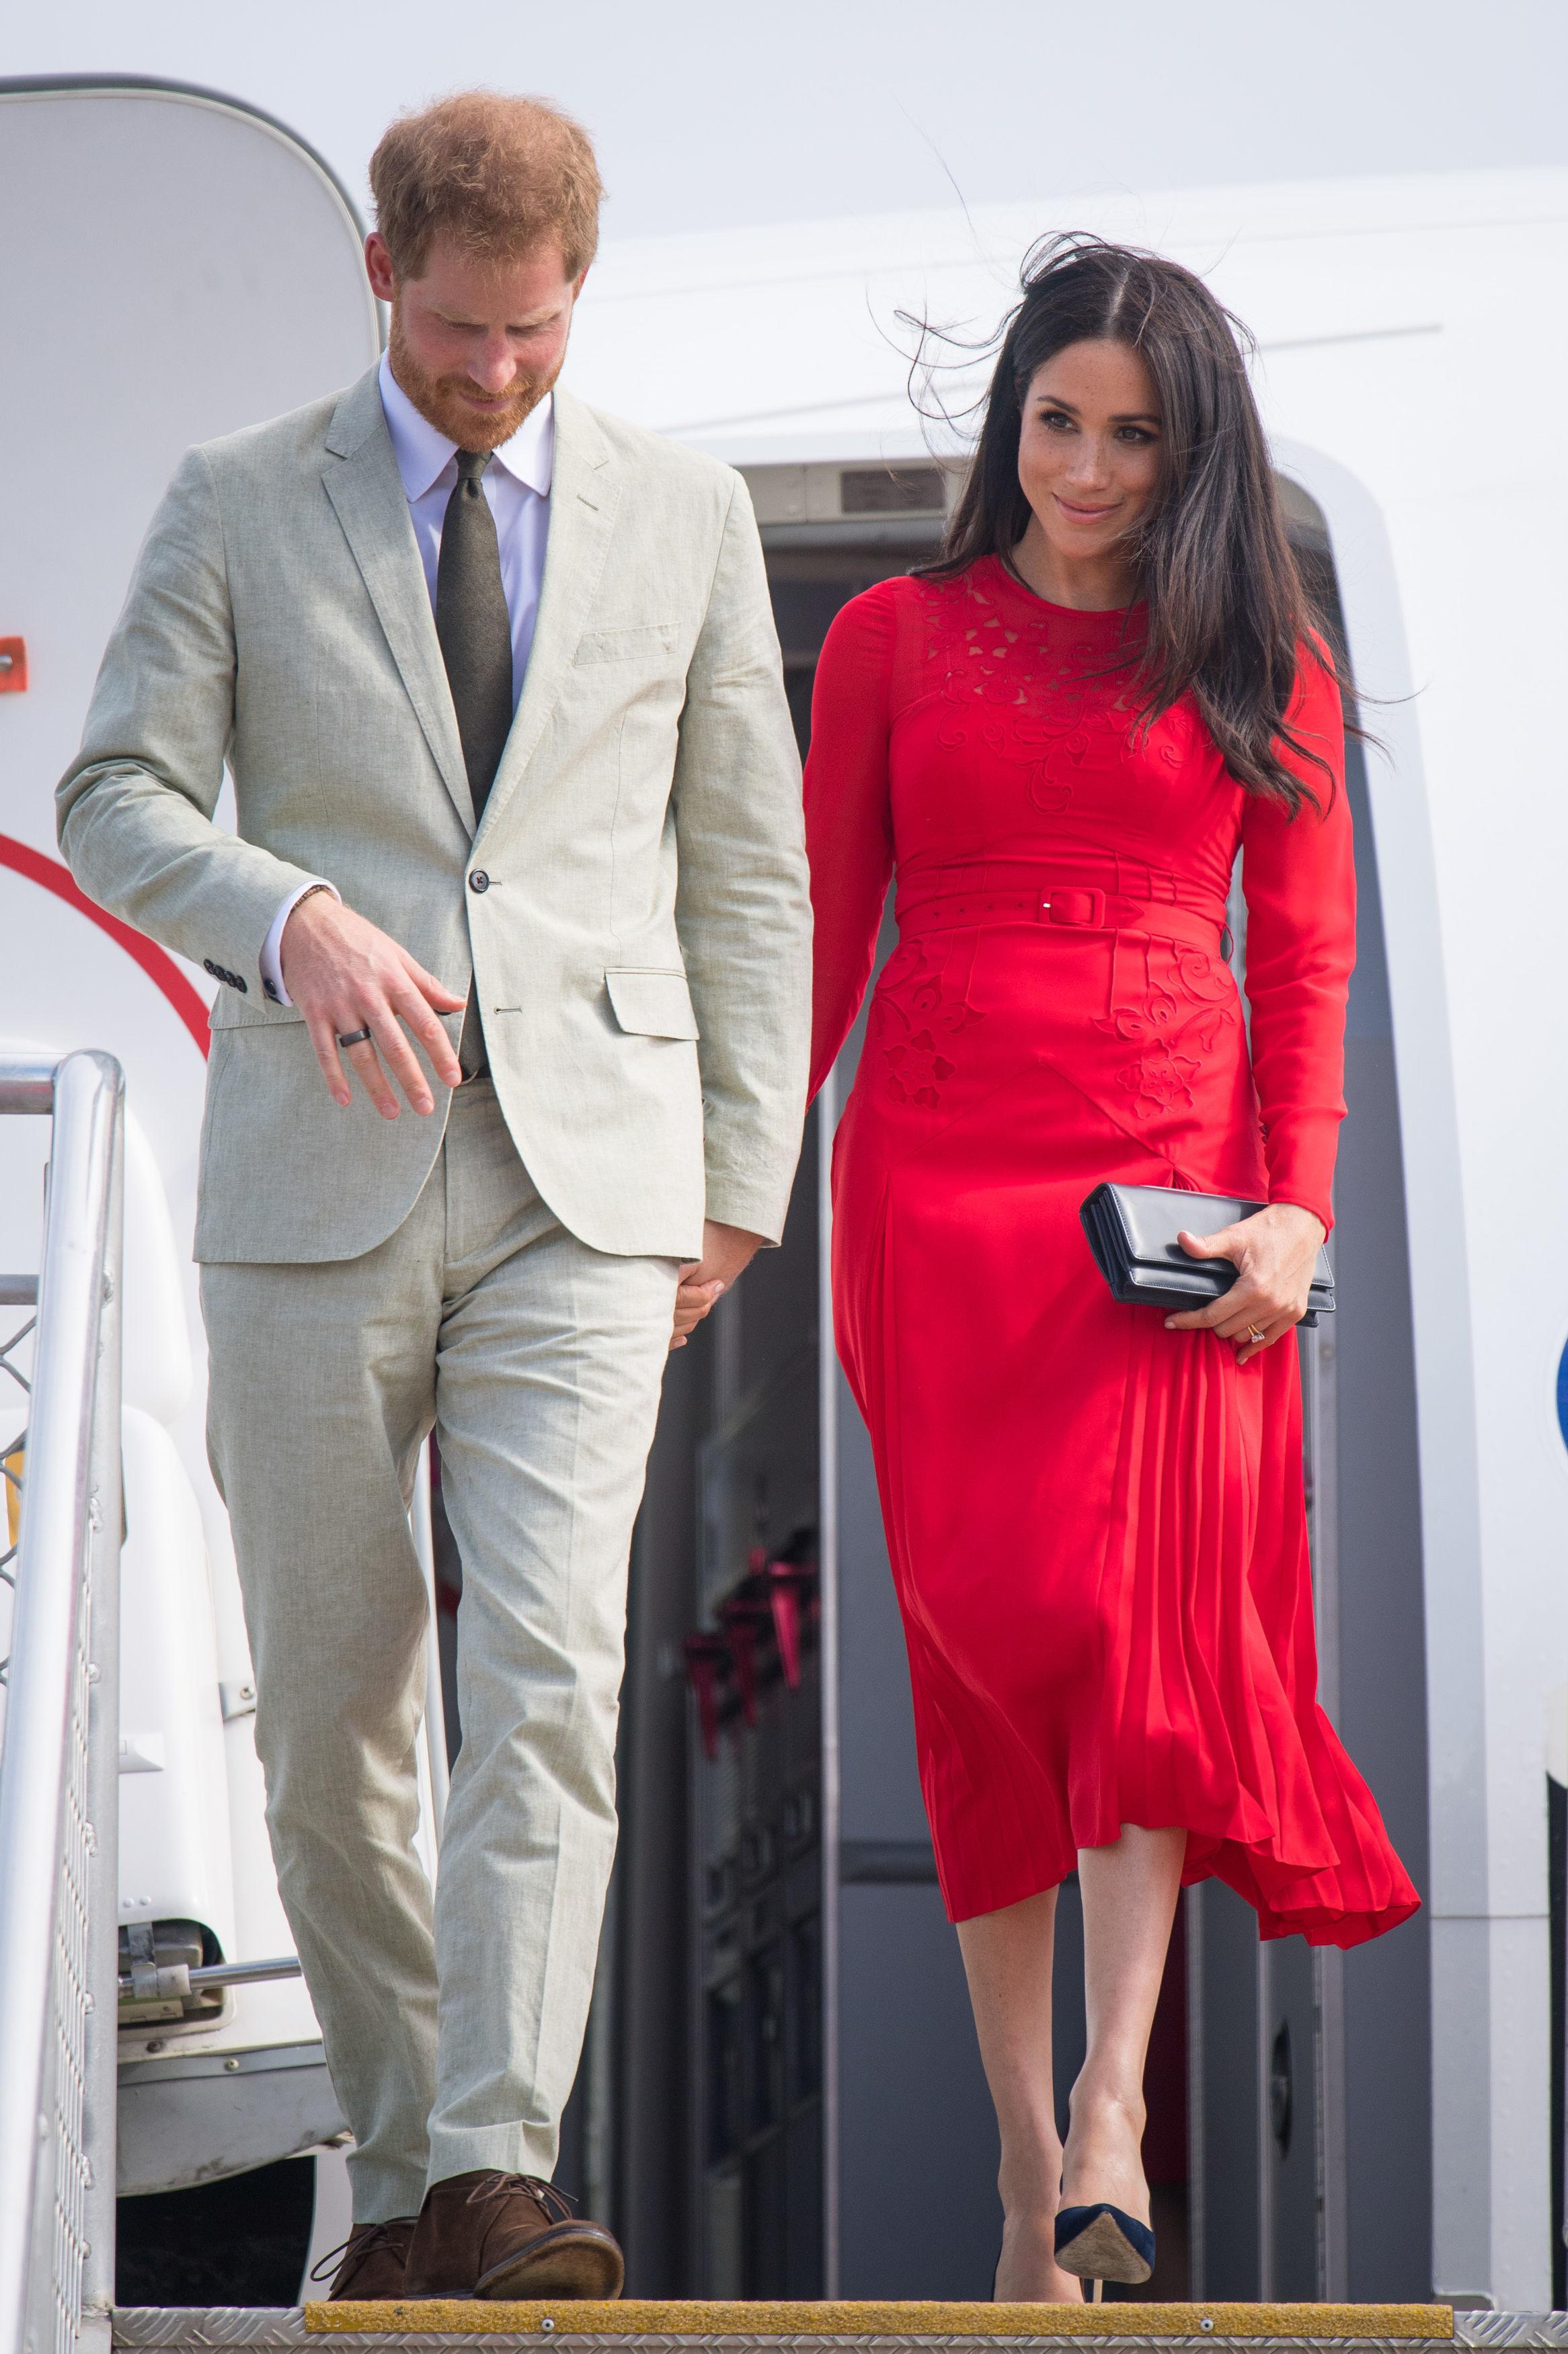 File photo dated 25/10/18 of the Duke and Duchess of Sussex arriving at Fua'amotu Airport, Tonga, with Meghan wearing a £345 red outfit by London fashion brand Self-Portrait.